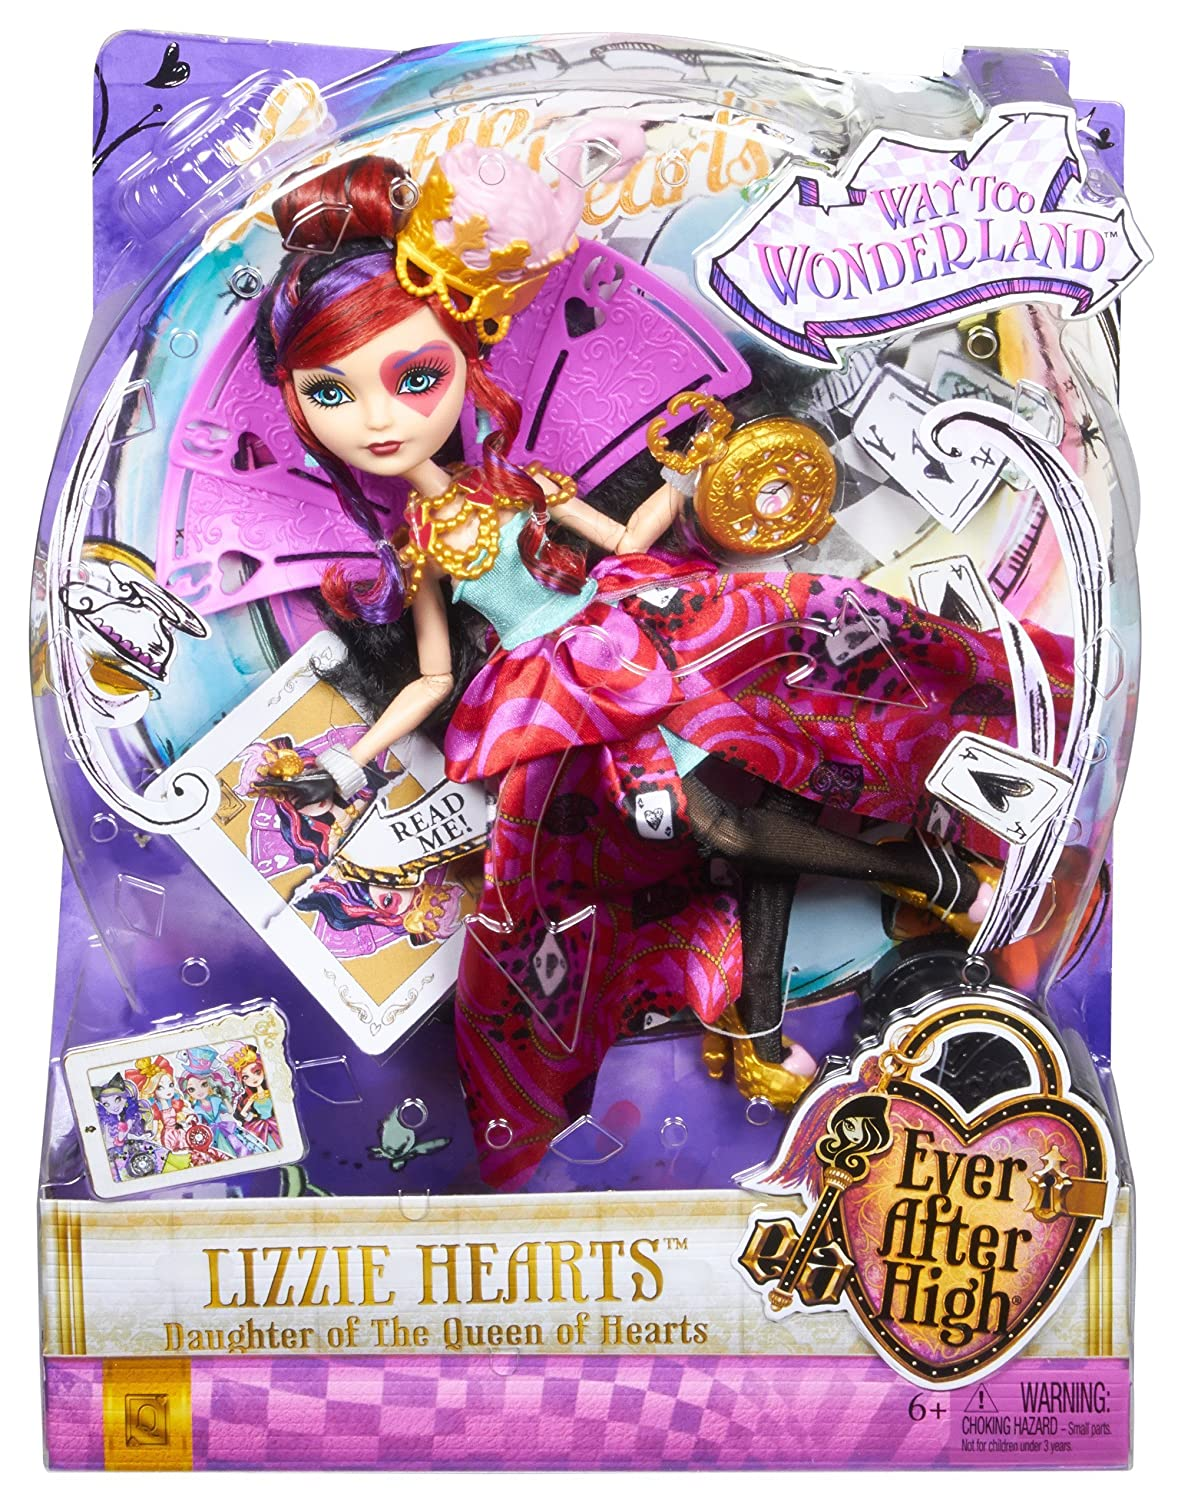 amazon com ever after high way too wonderland lizzie hearts doll